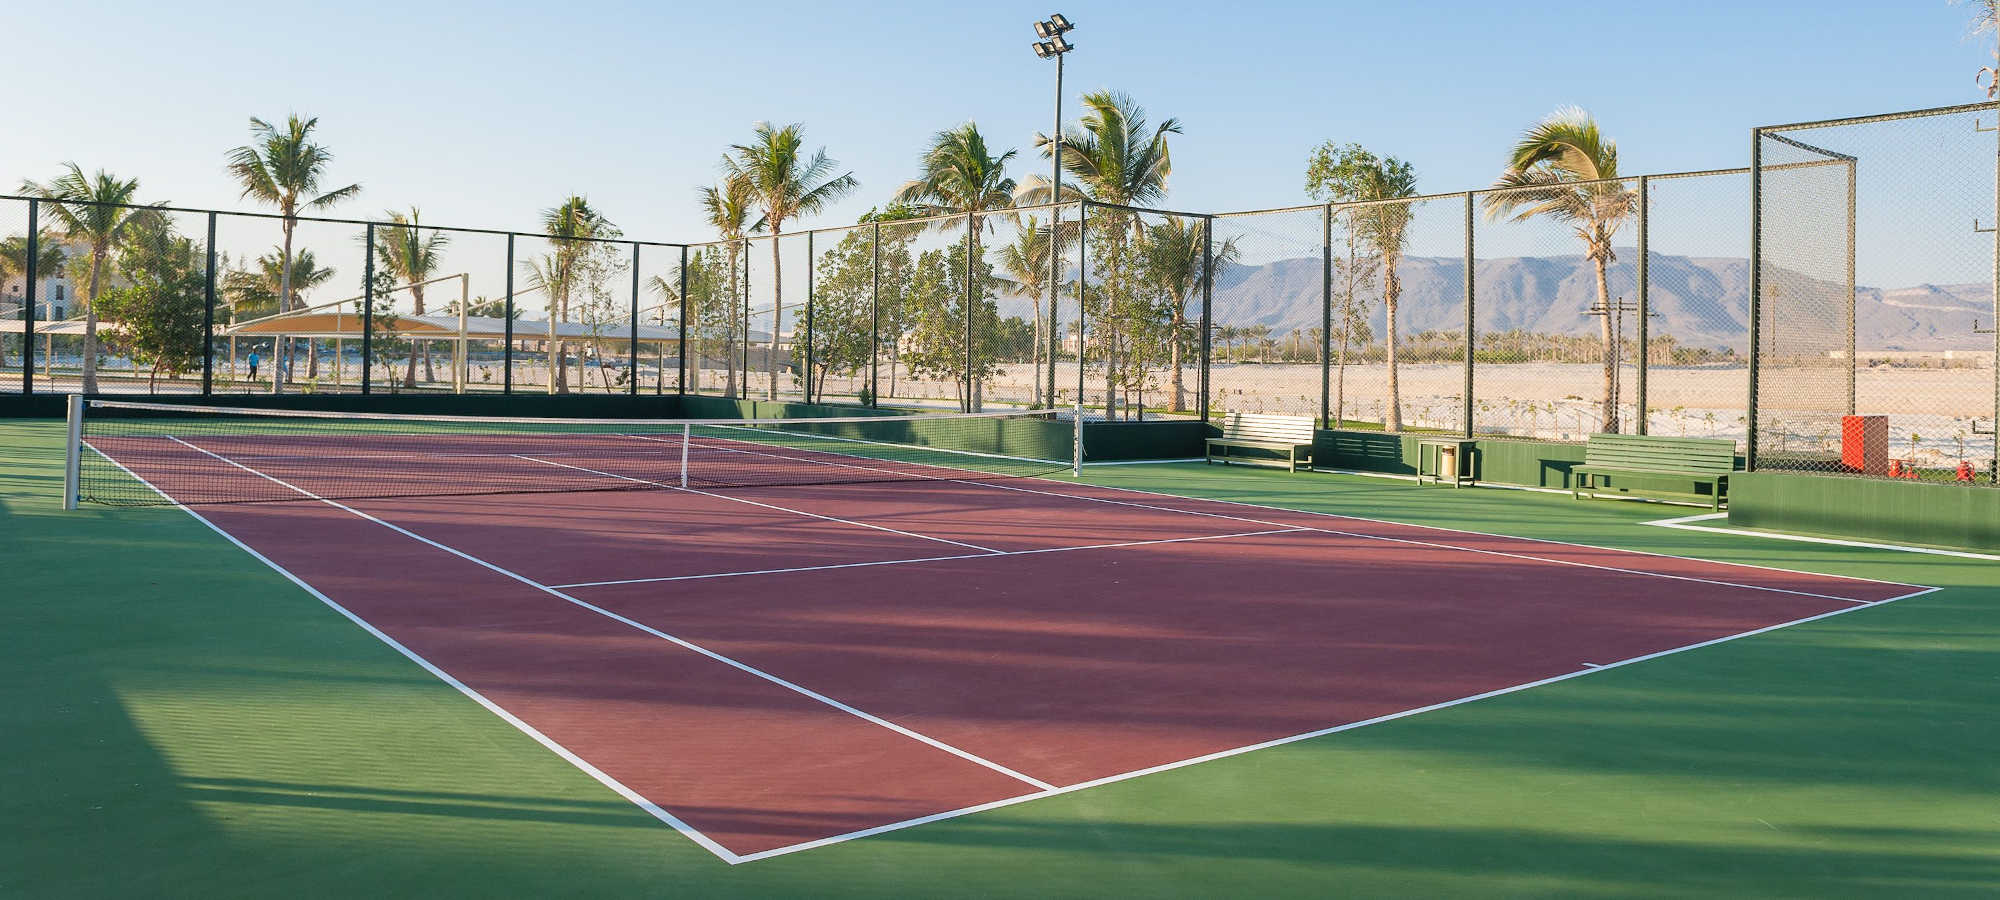 The hotel facility, the tennis court in Fanar Hotel & Residences in Hawana Salalah Oman